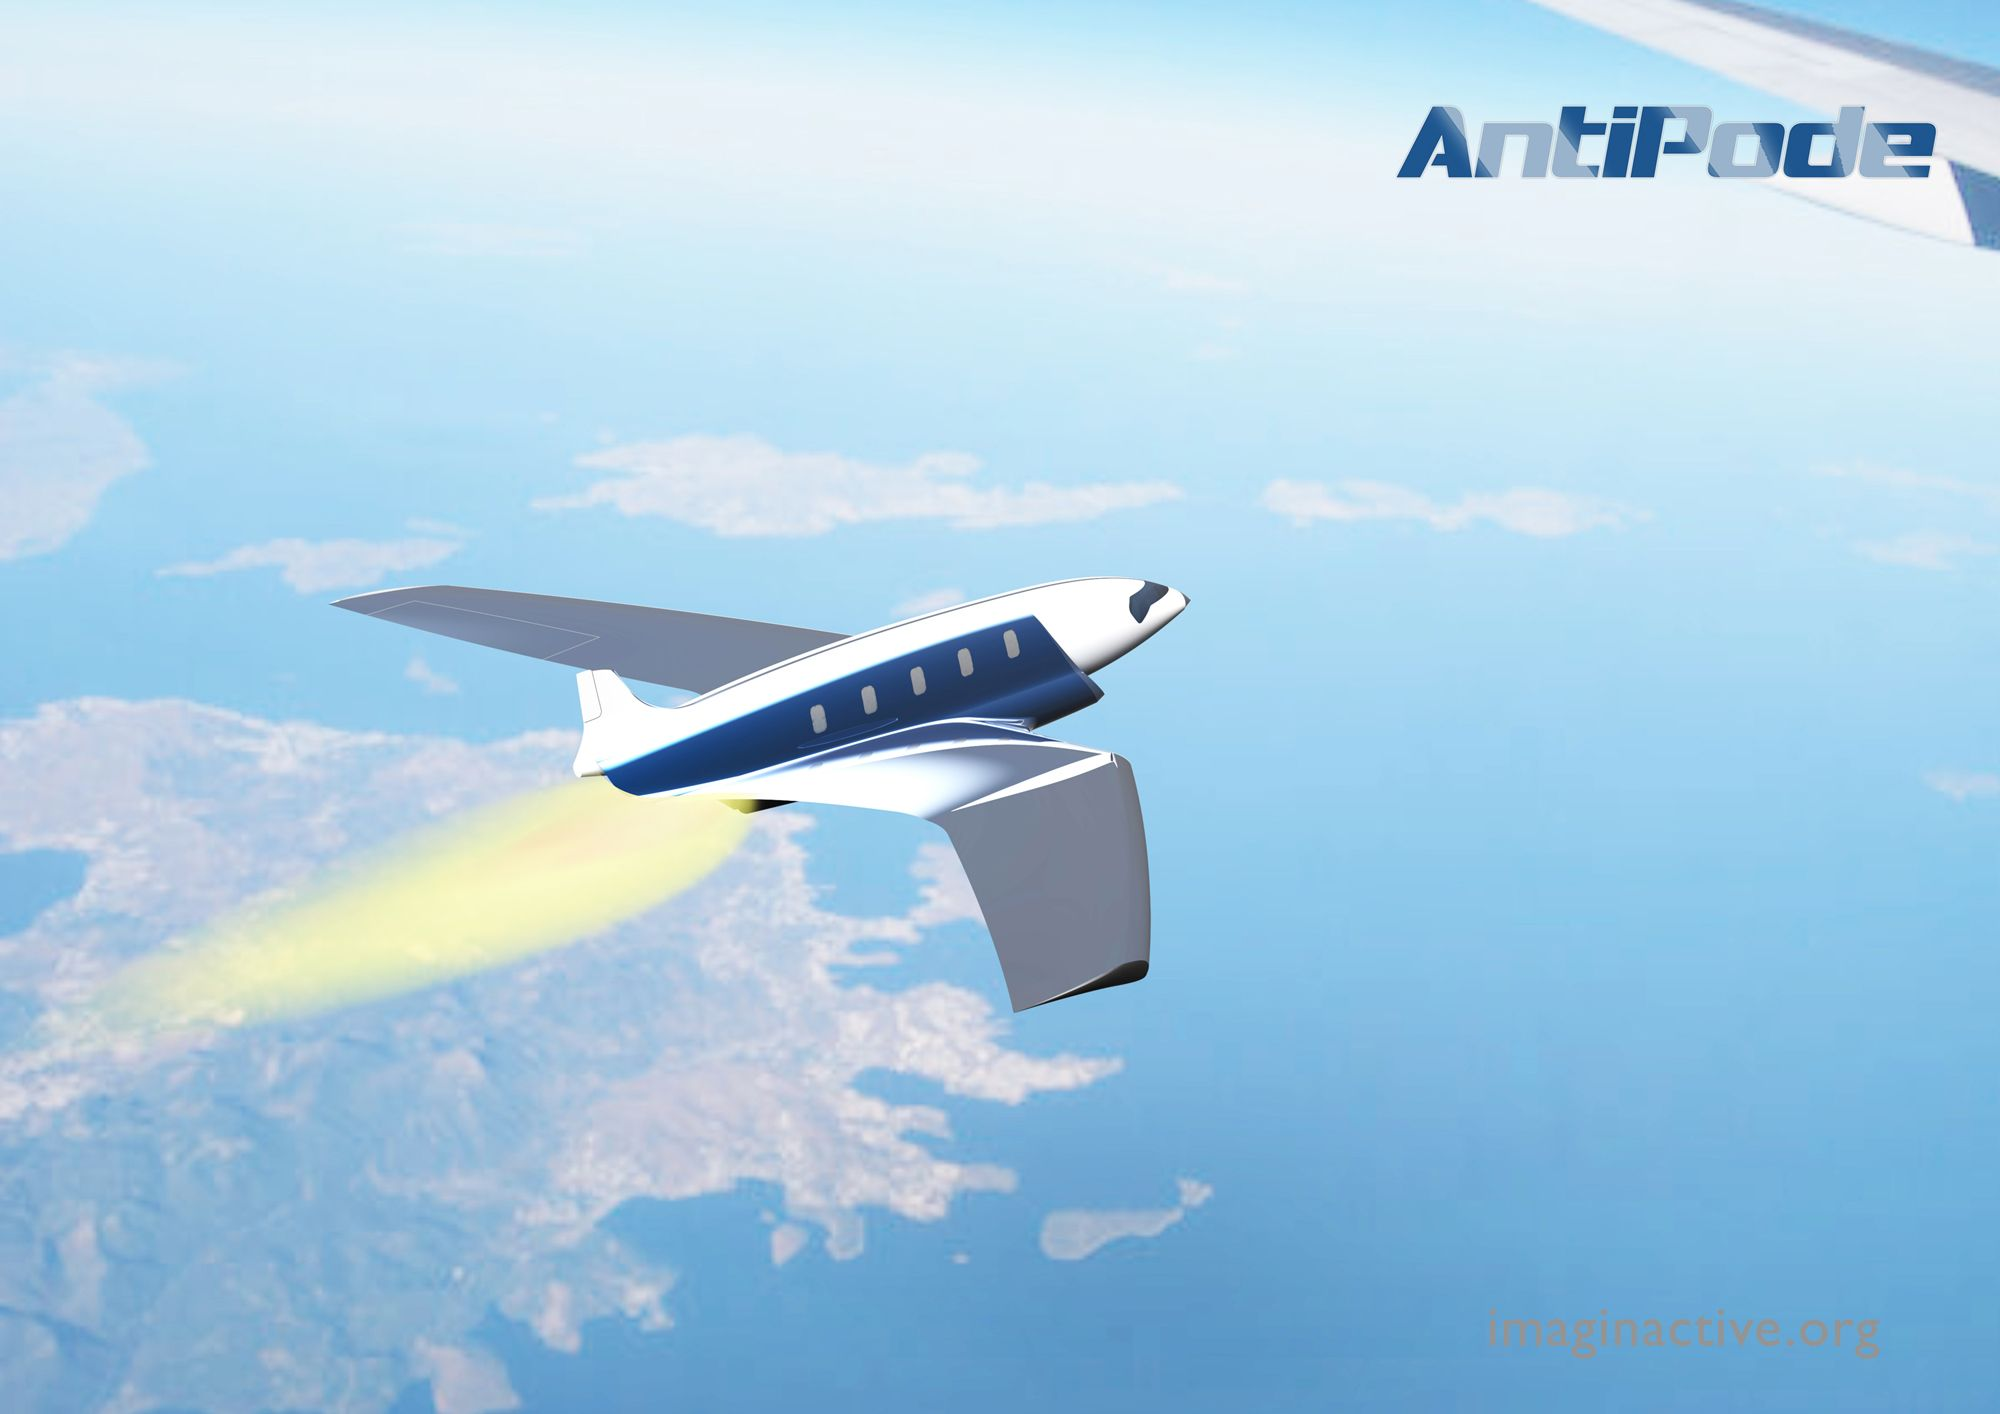 Antipode,hypersonic jet